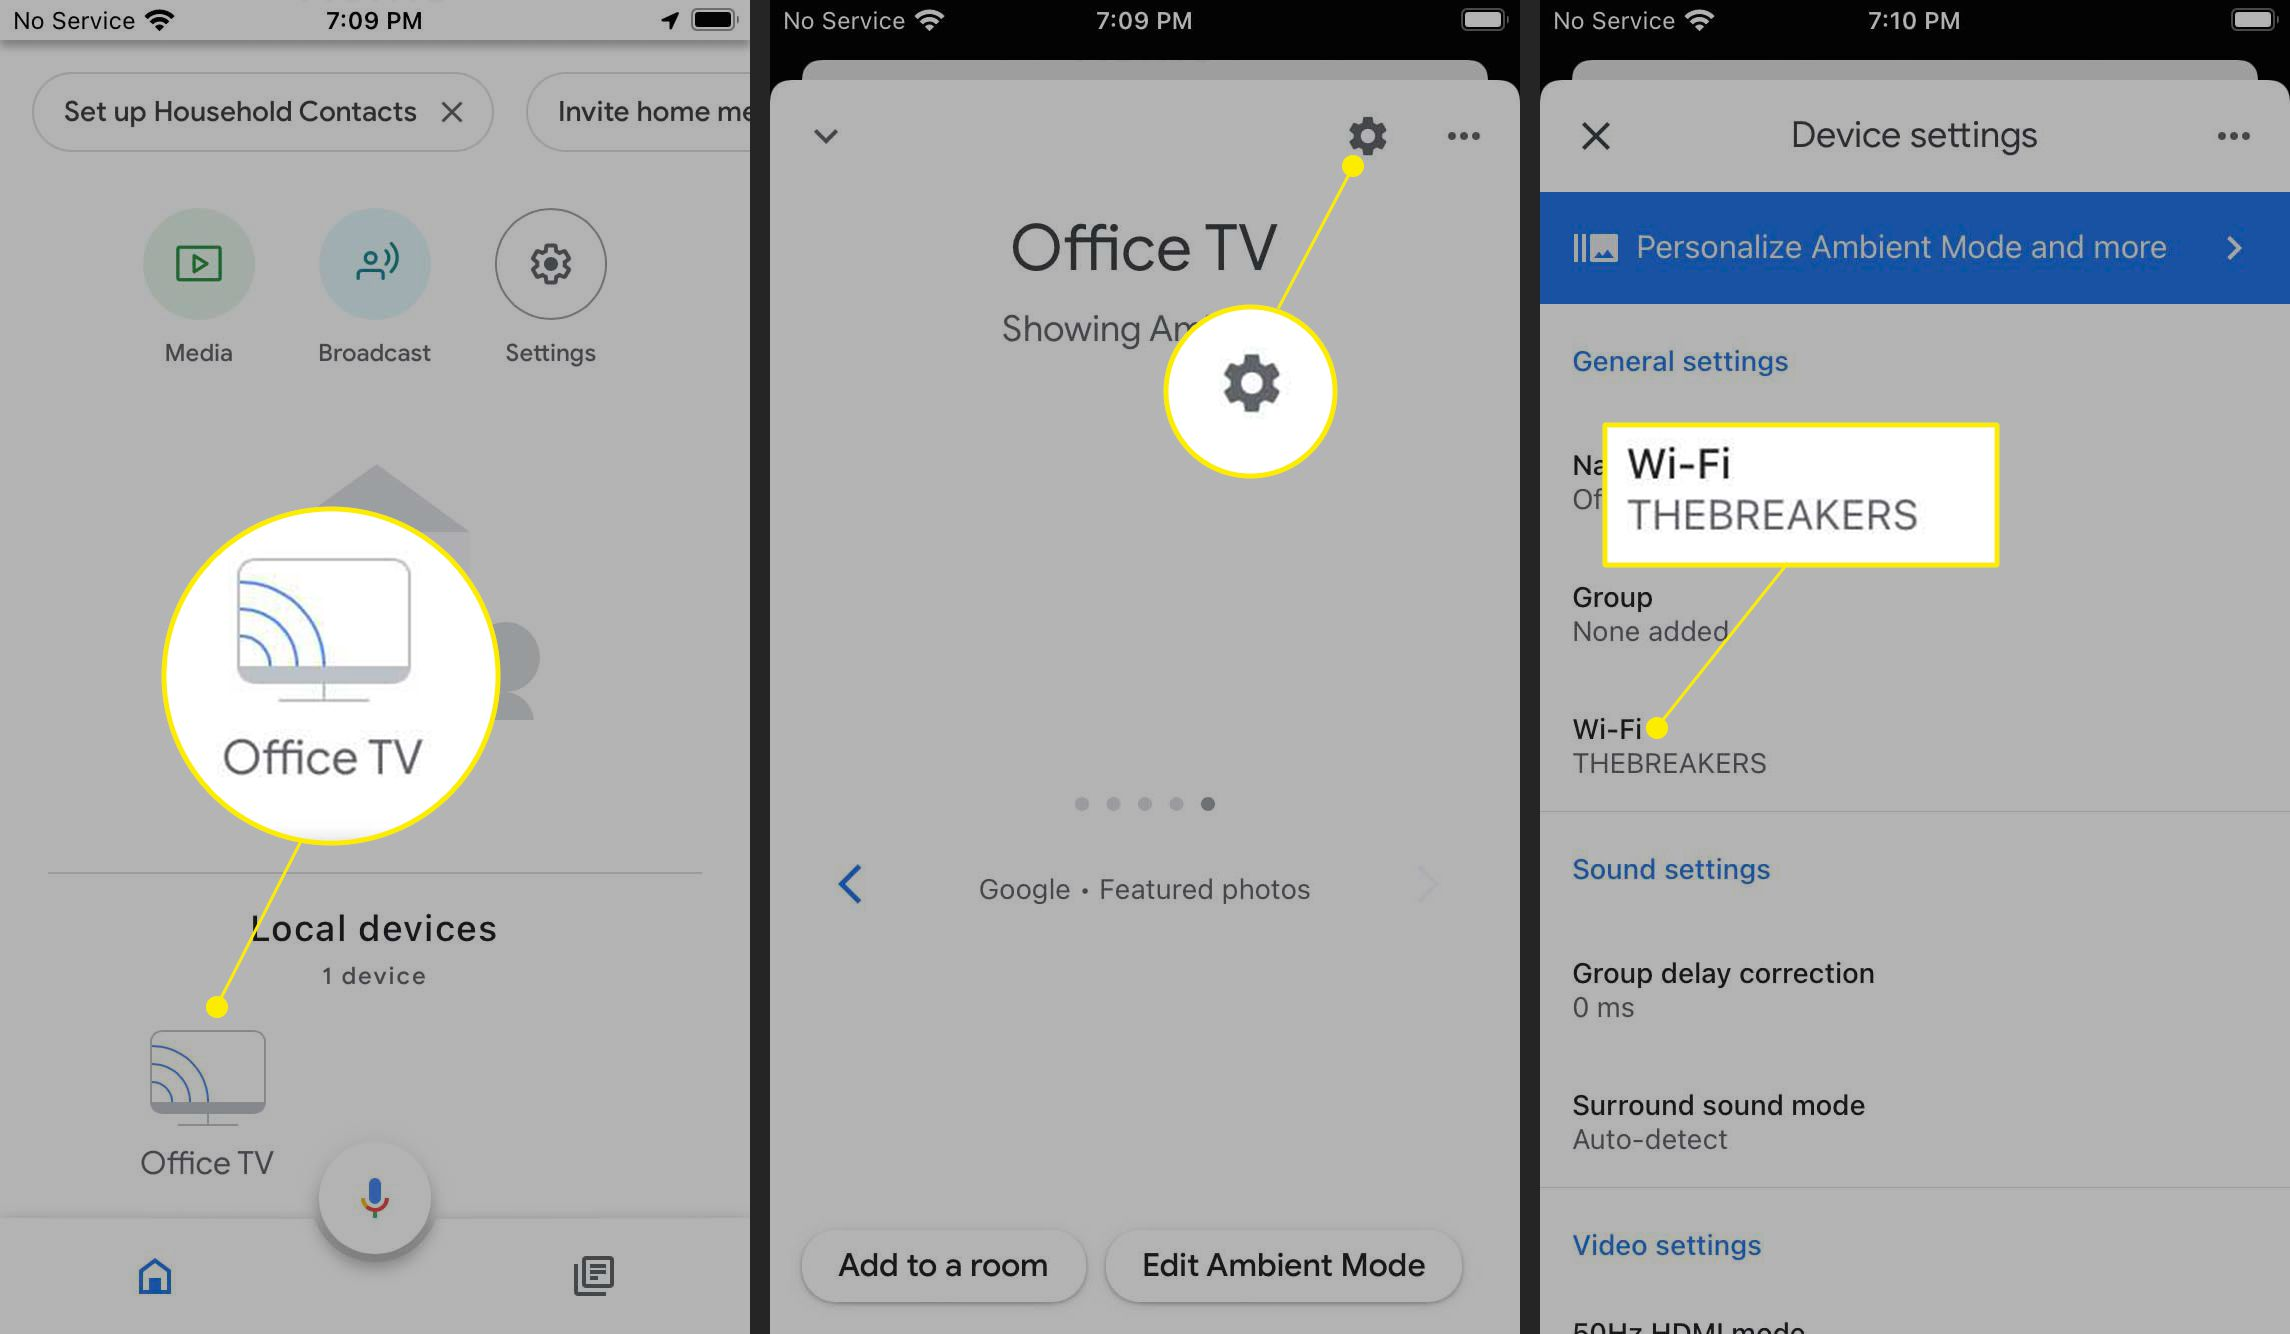 Google Home App with Office TV, Settings, and Wi-Fi highlighted